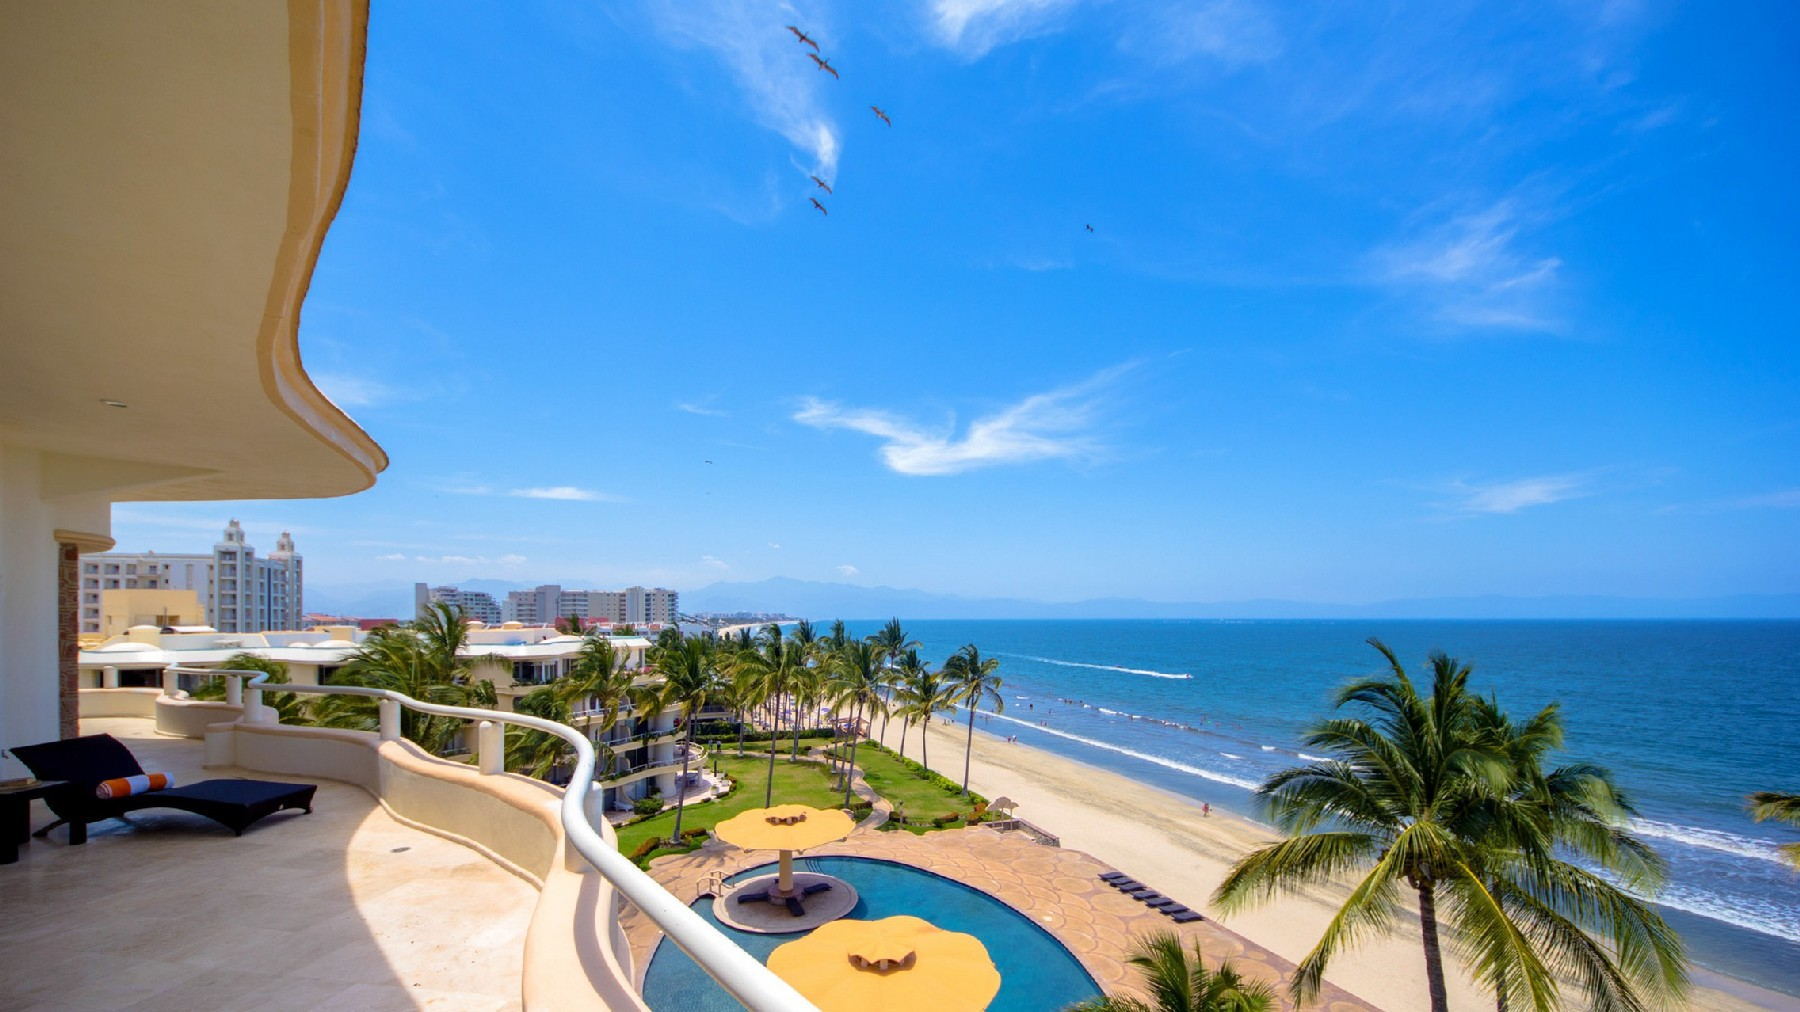 Apartment for Sale at Quinta del Mar II PH 602 Puerto Vallarta, Jalisco Mexico